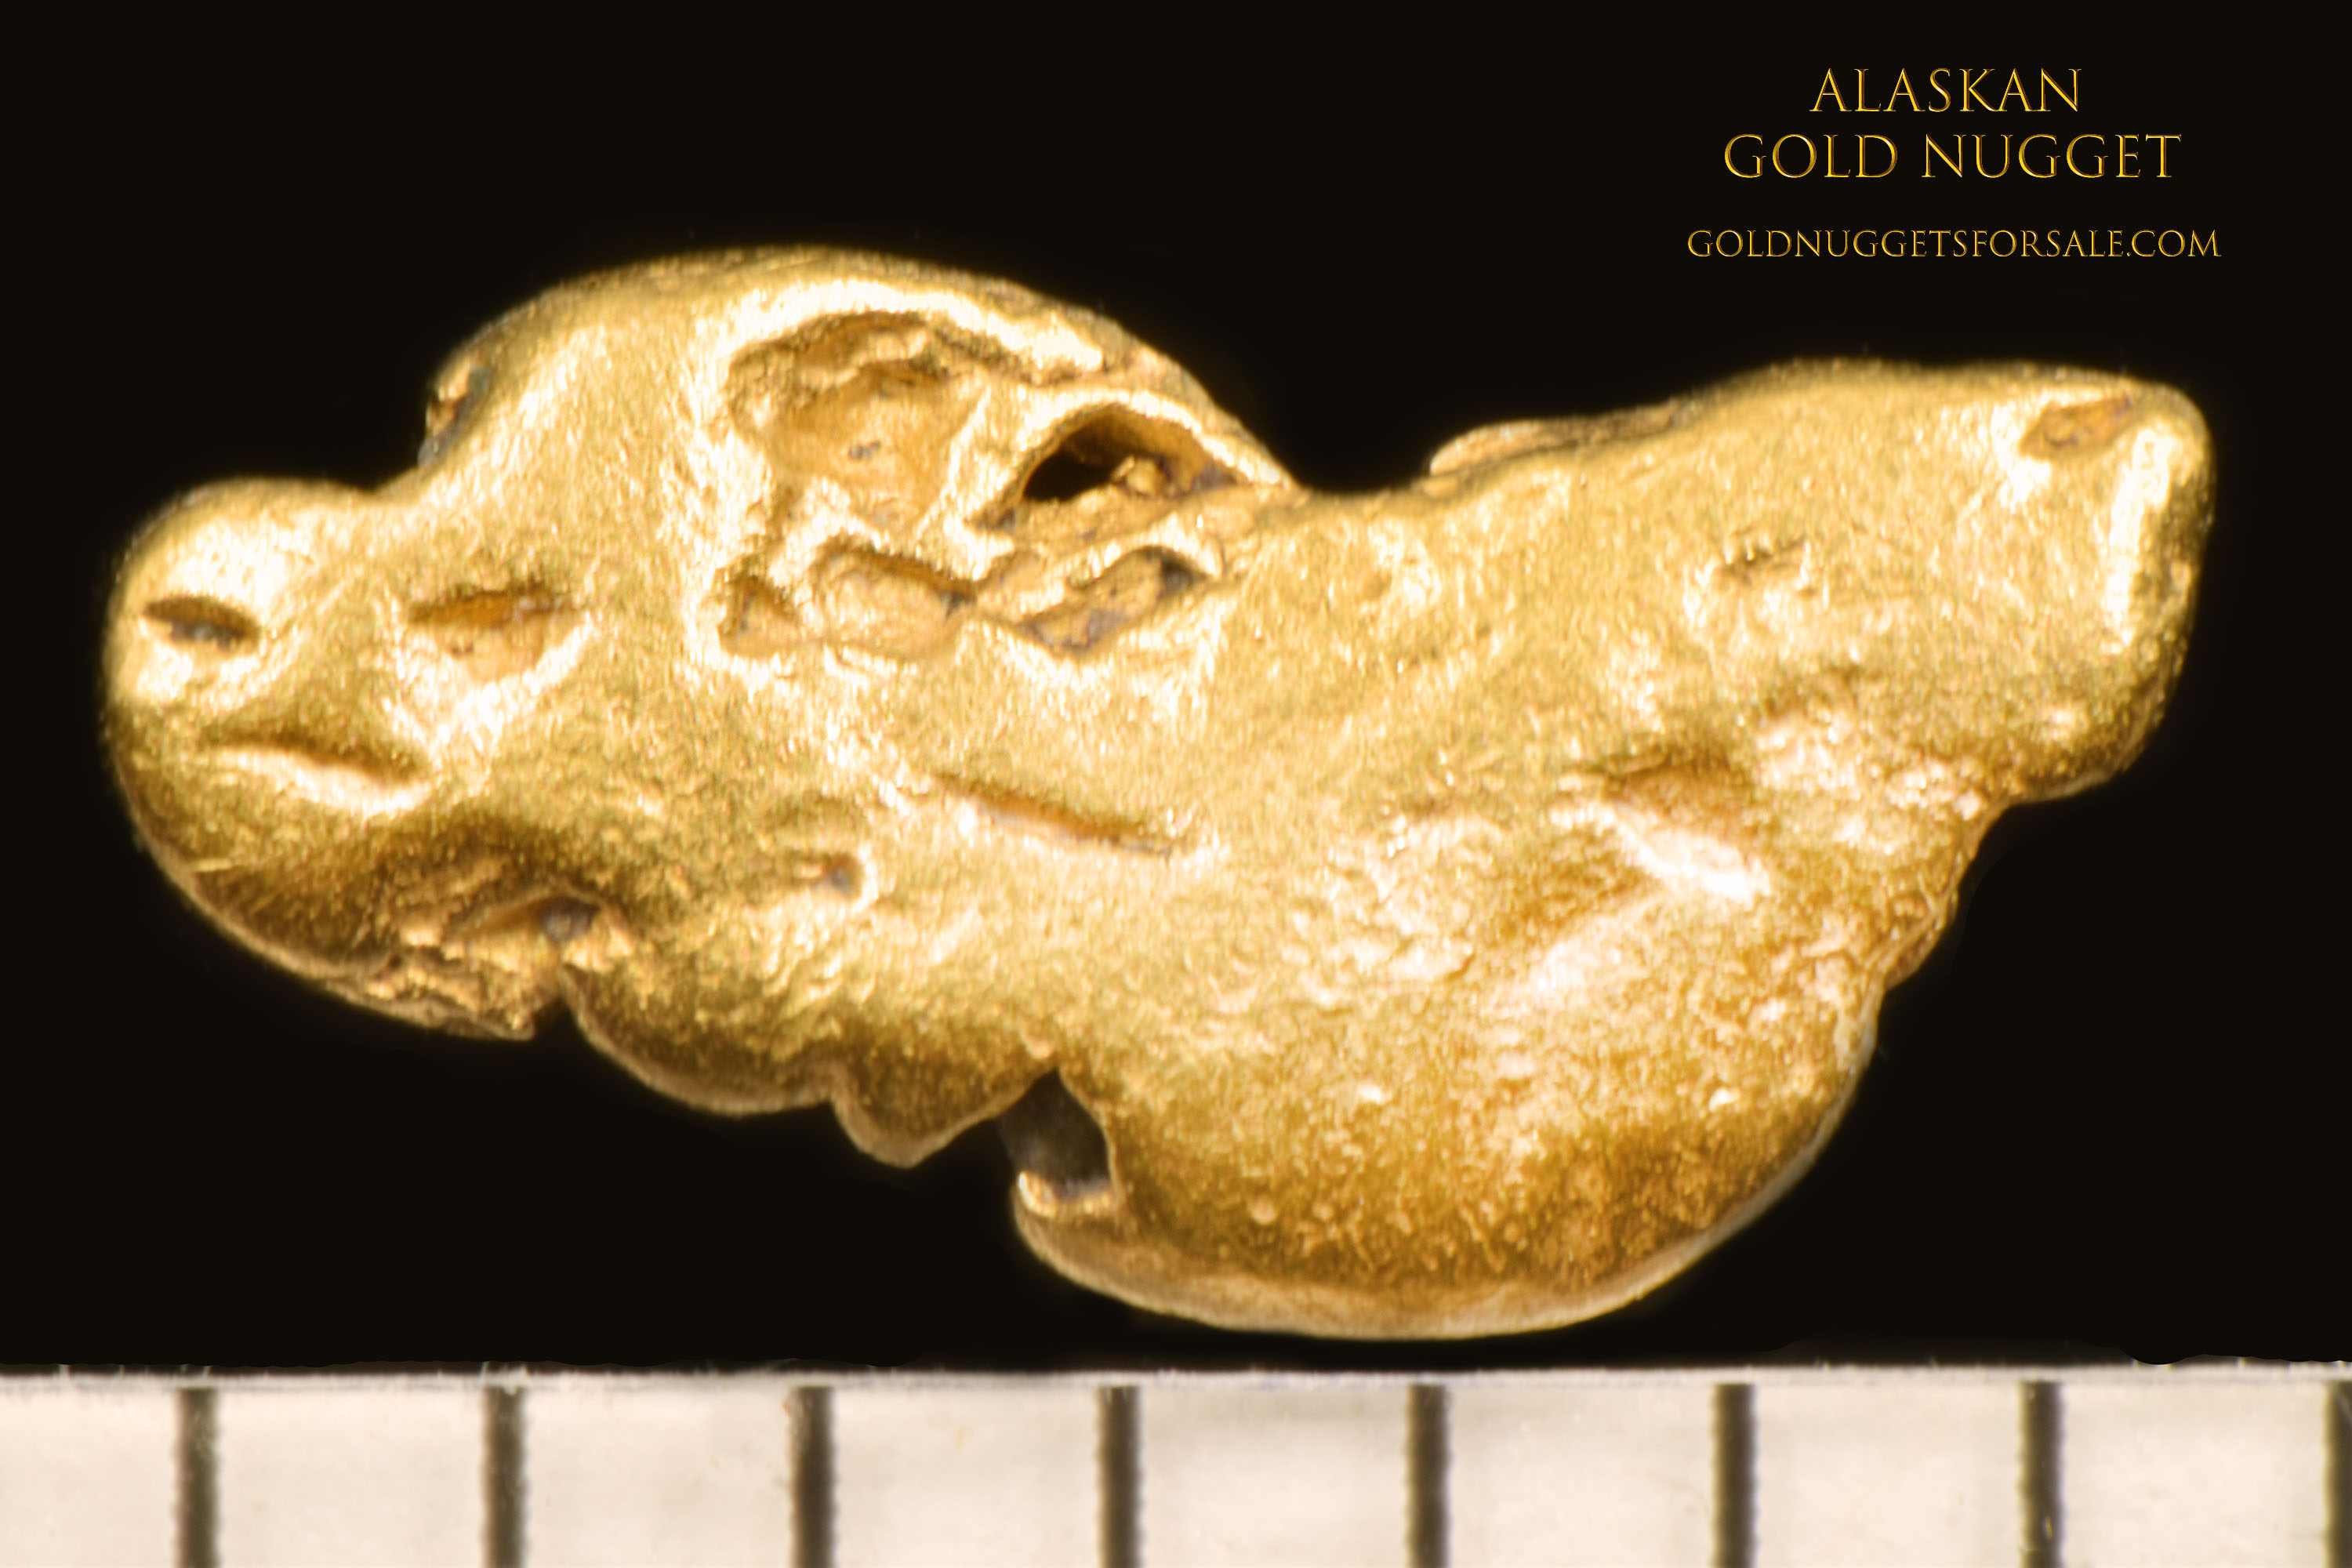 Native Alaskan Jewelry Grade Gold Nugget - Click Image to Close